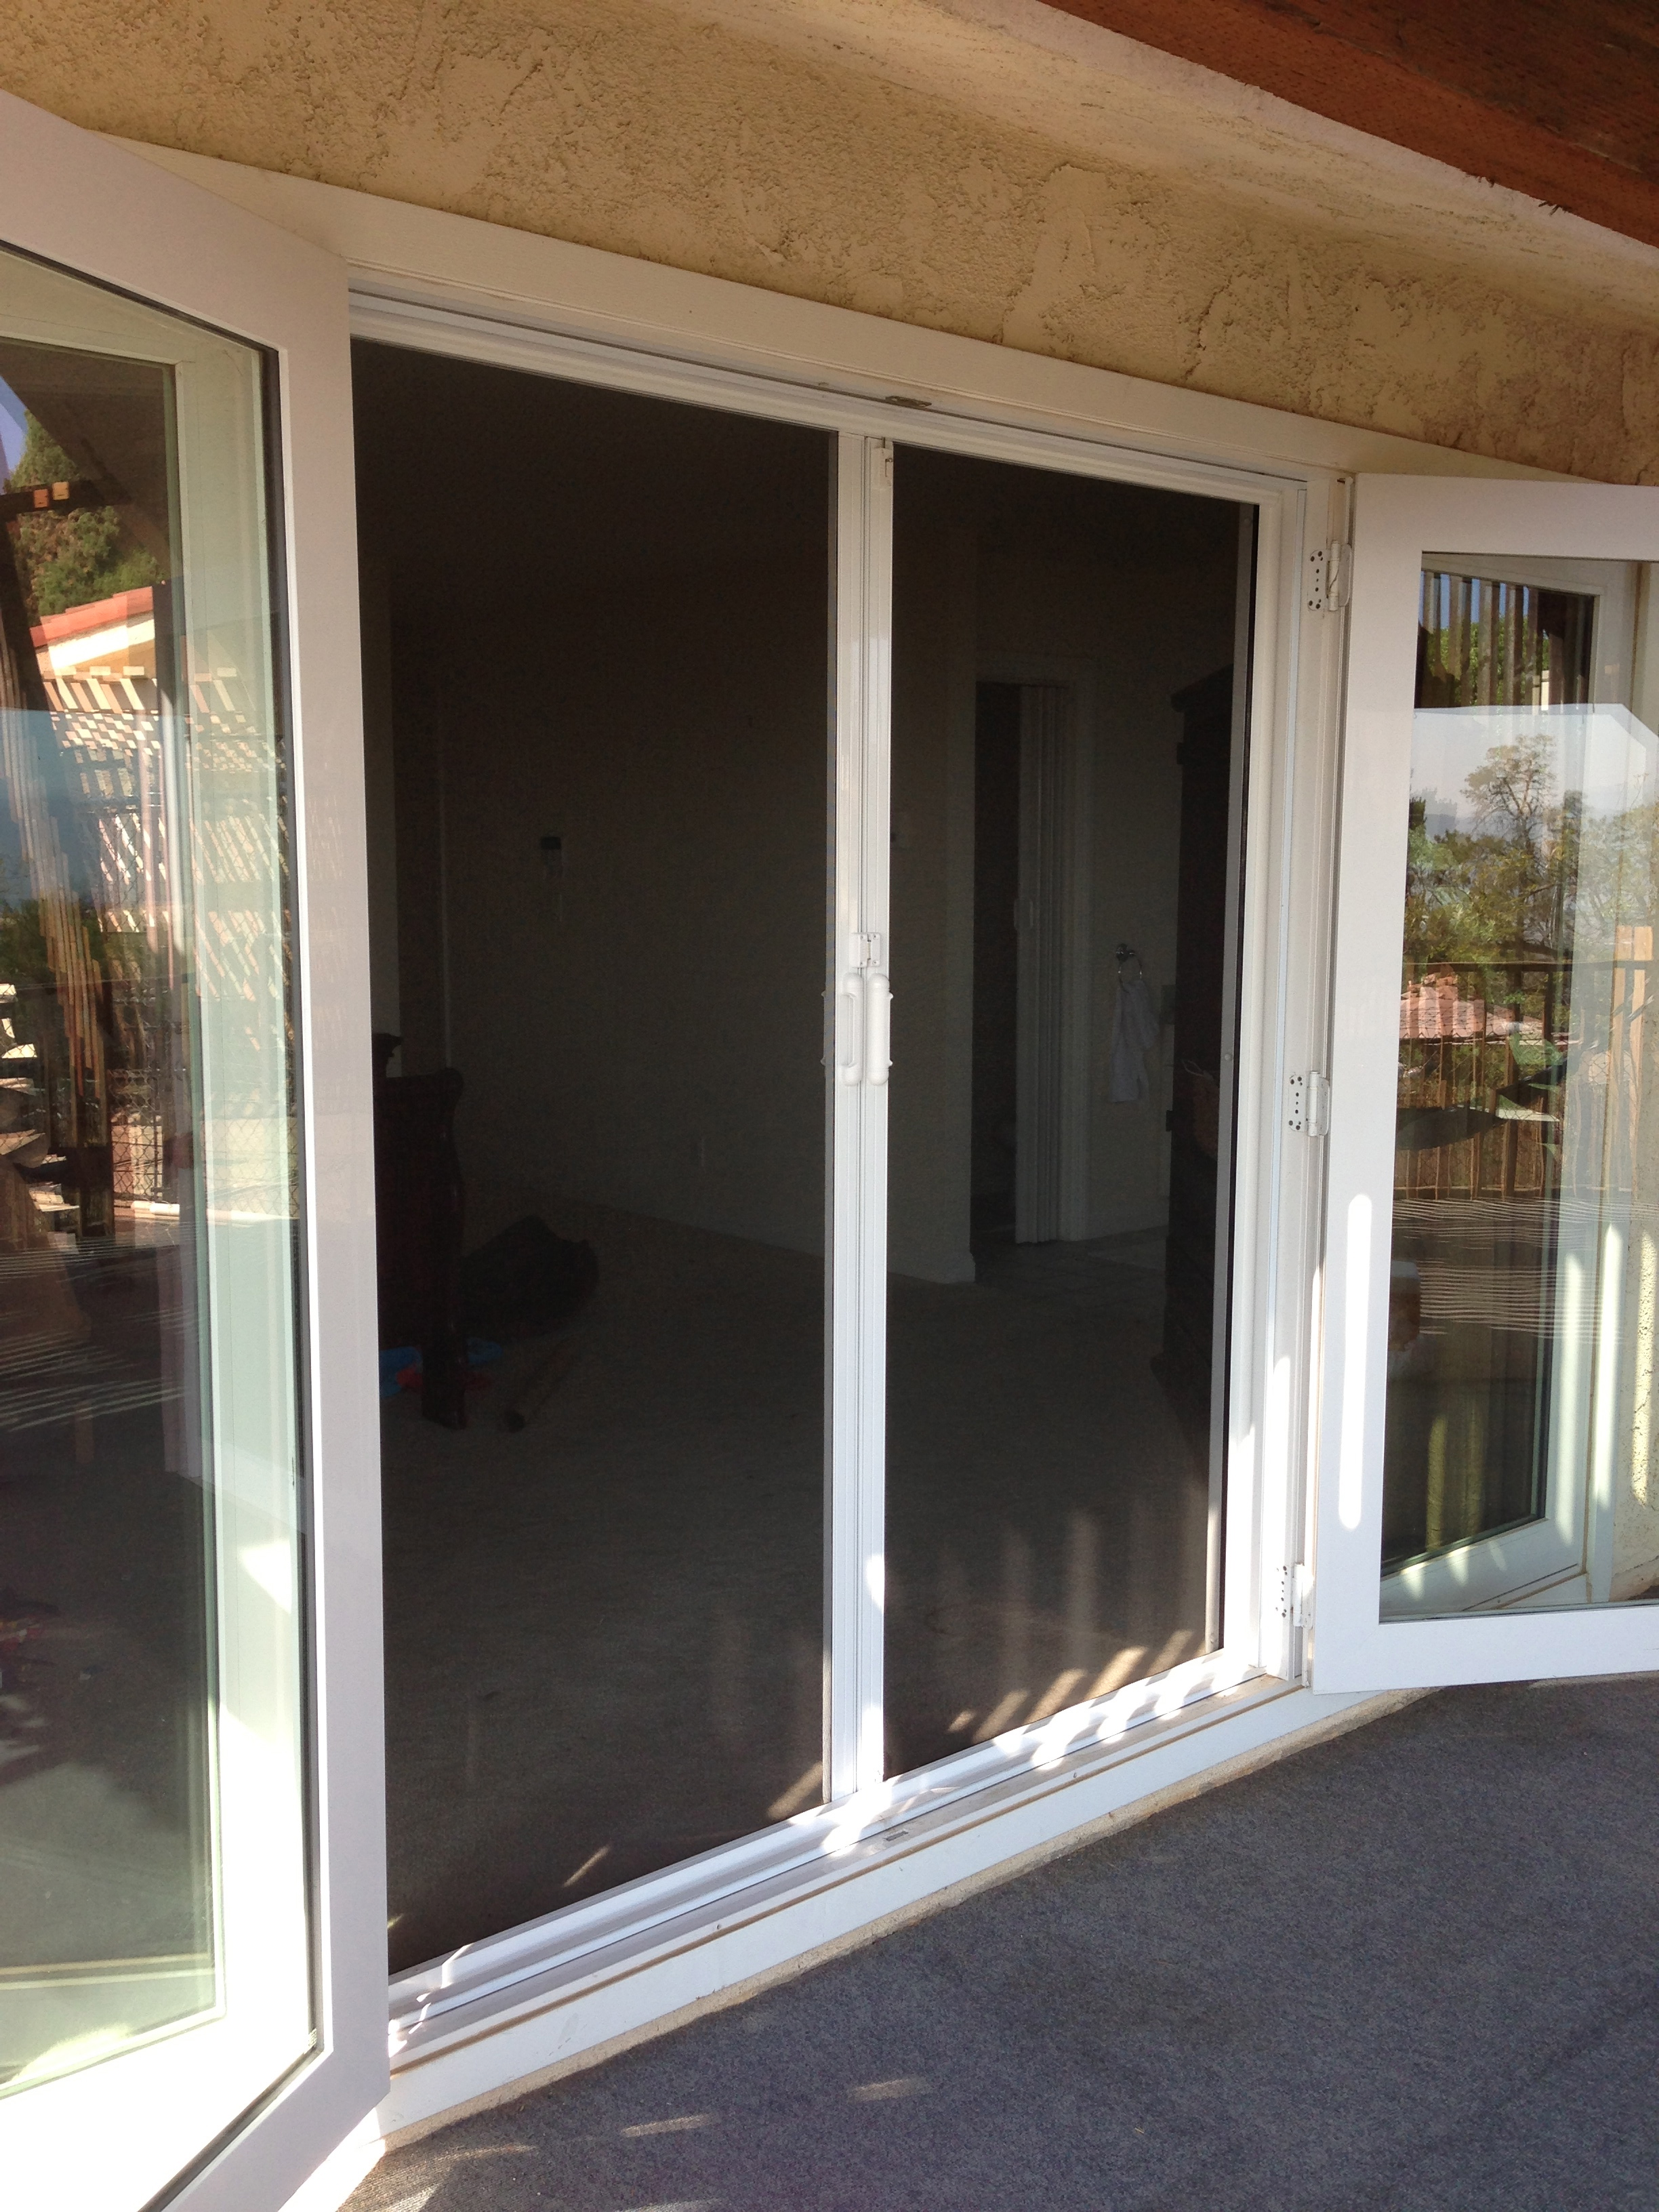 Retractable screen doors screen door and window screen for French door sliding screen